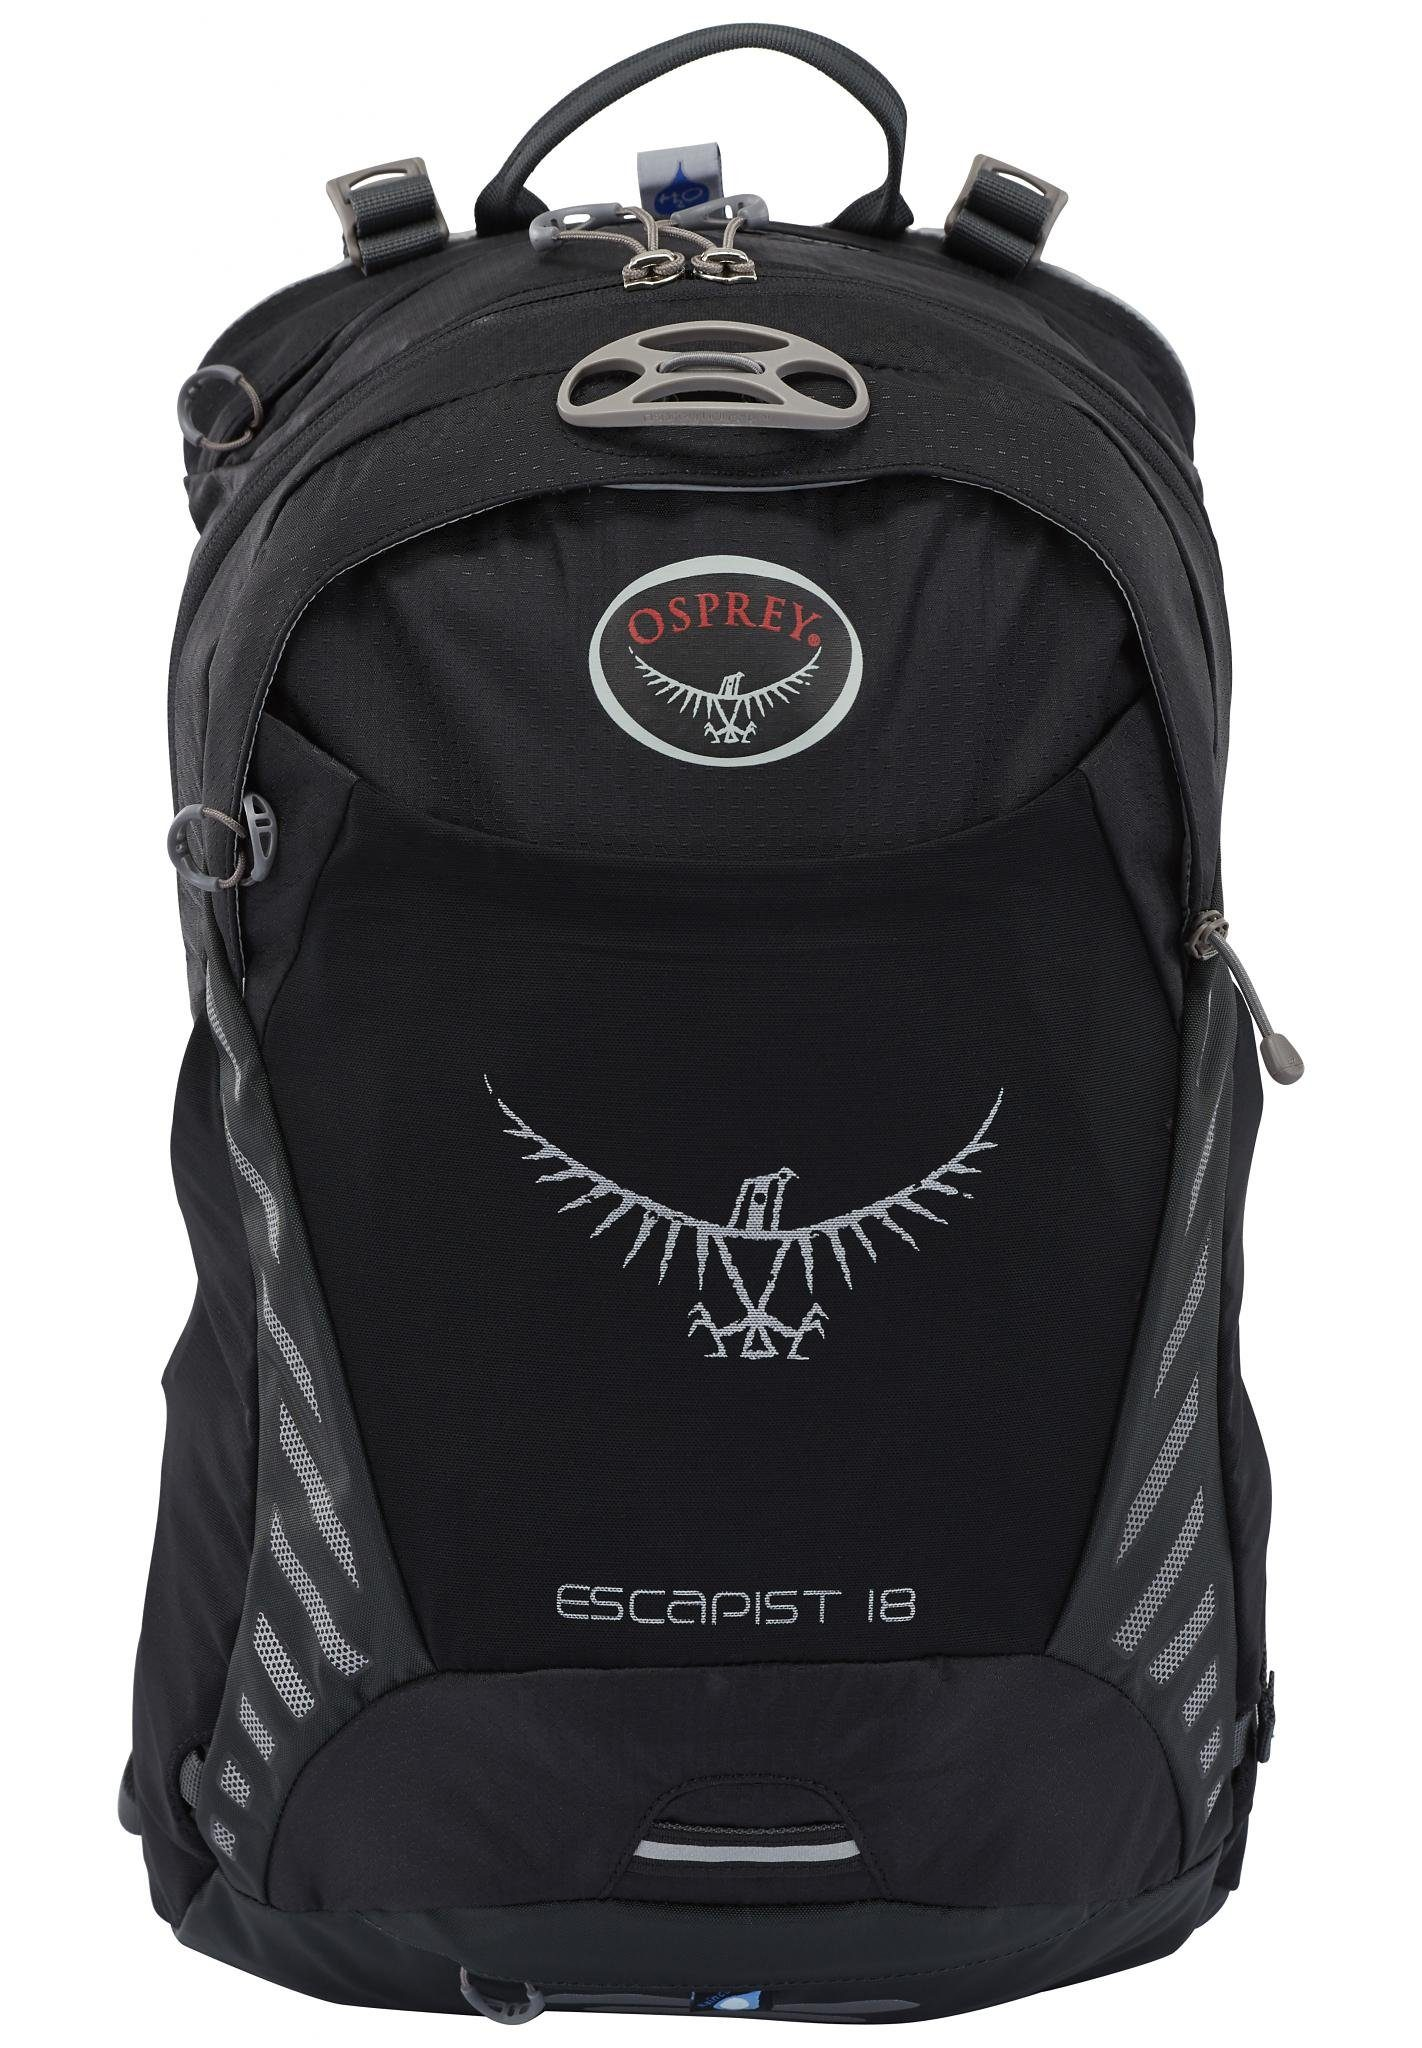 Osprey Rucksack »Escapist 18 Backpack S/M«